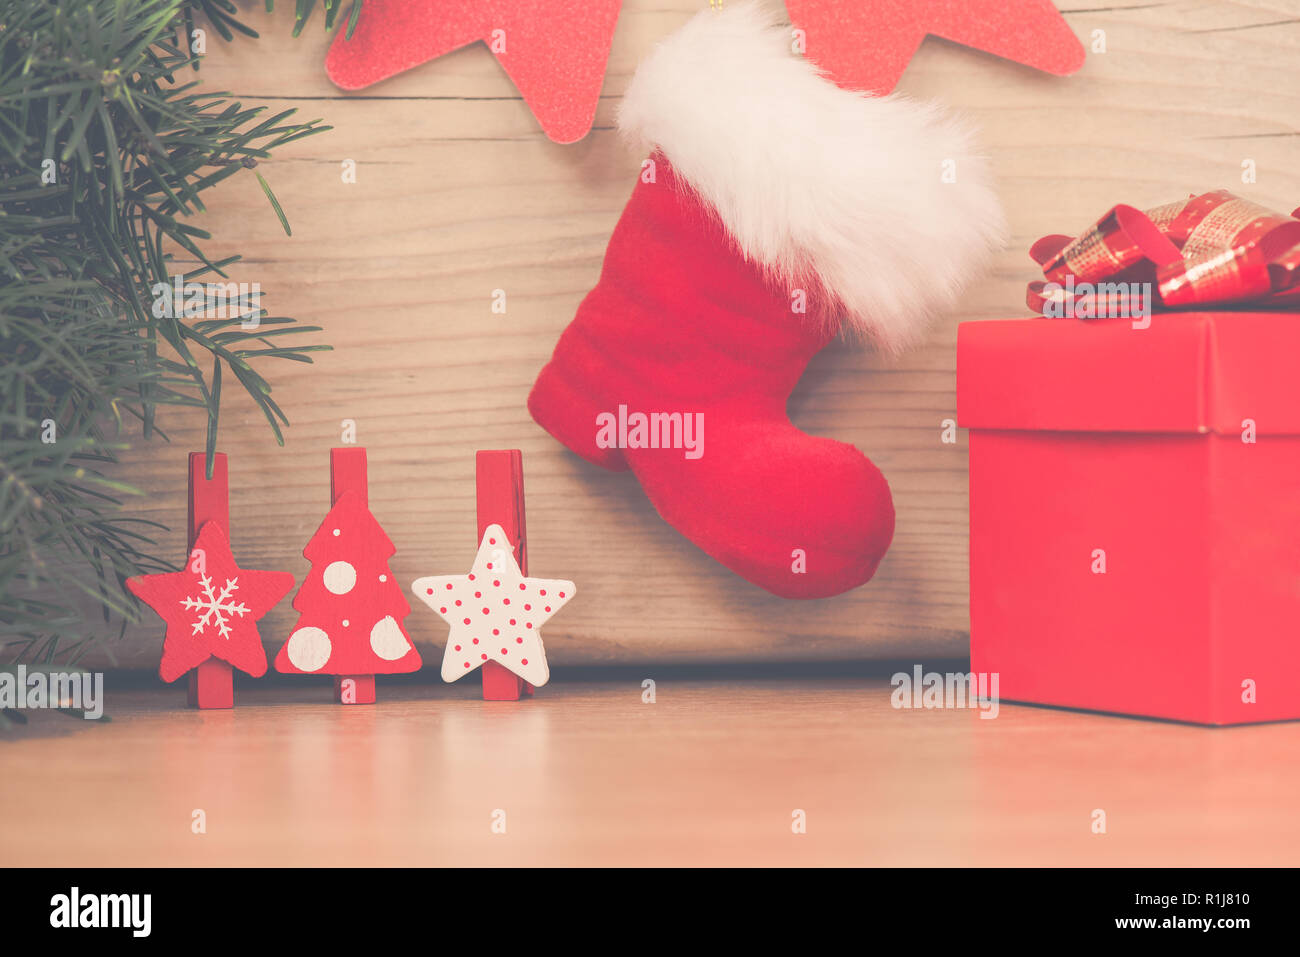 Christmas arrangement with red boot gift and wooden stars and fir tree - Stock Image